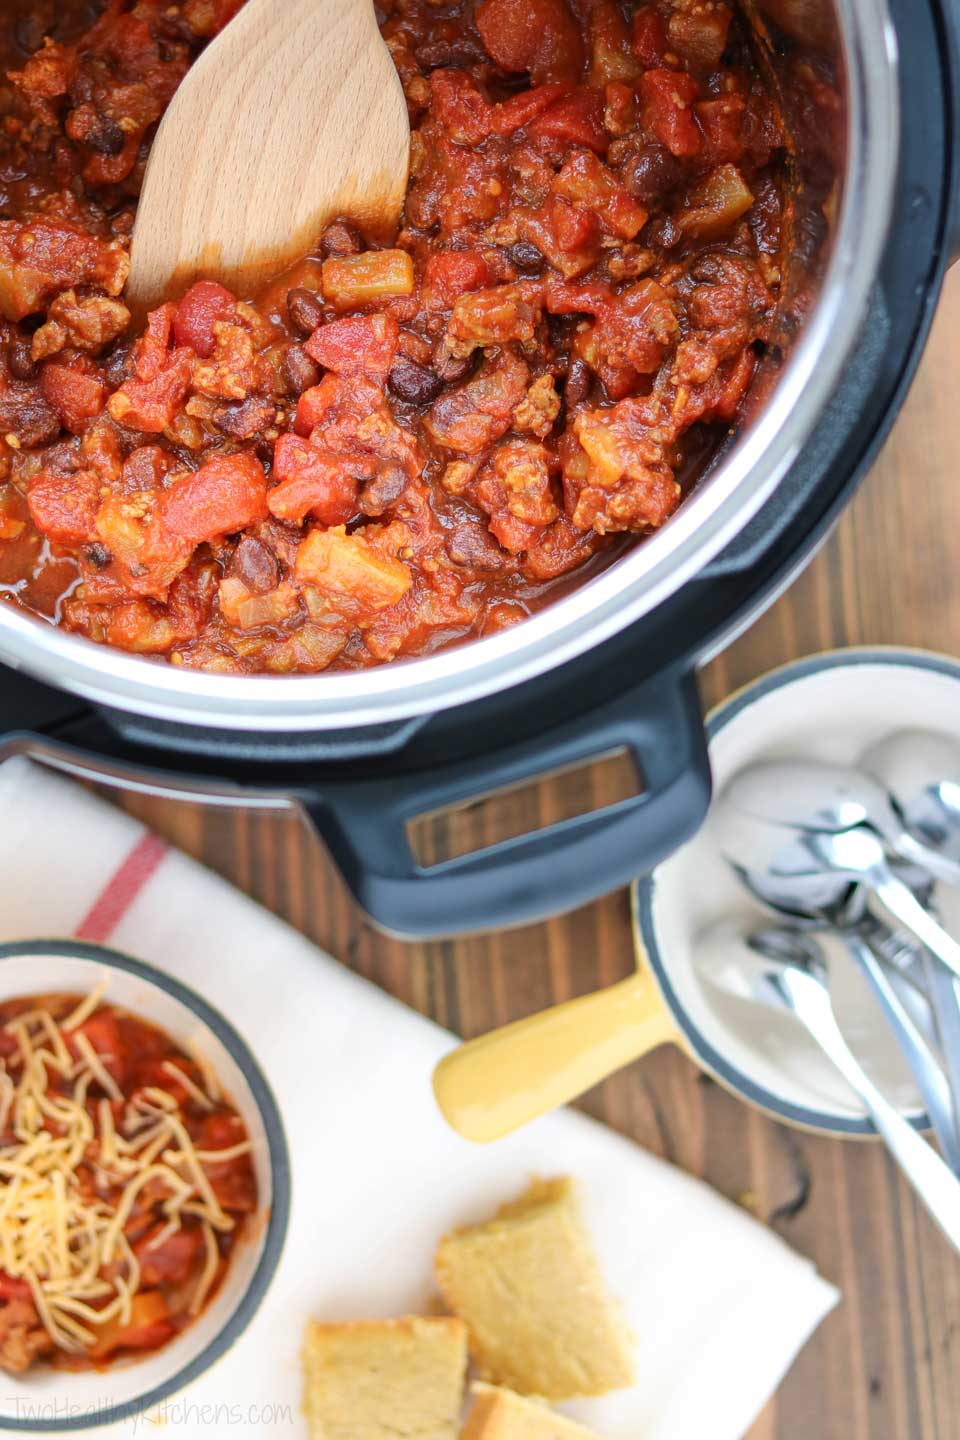 Knowing what types of recipes you plan to cook with your Instant Pot can help you make your decision about which Instant Pot to buy.